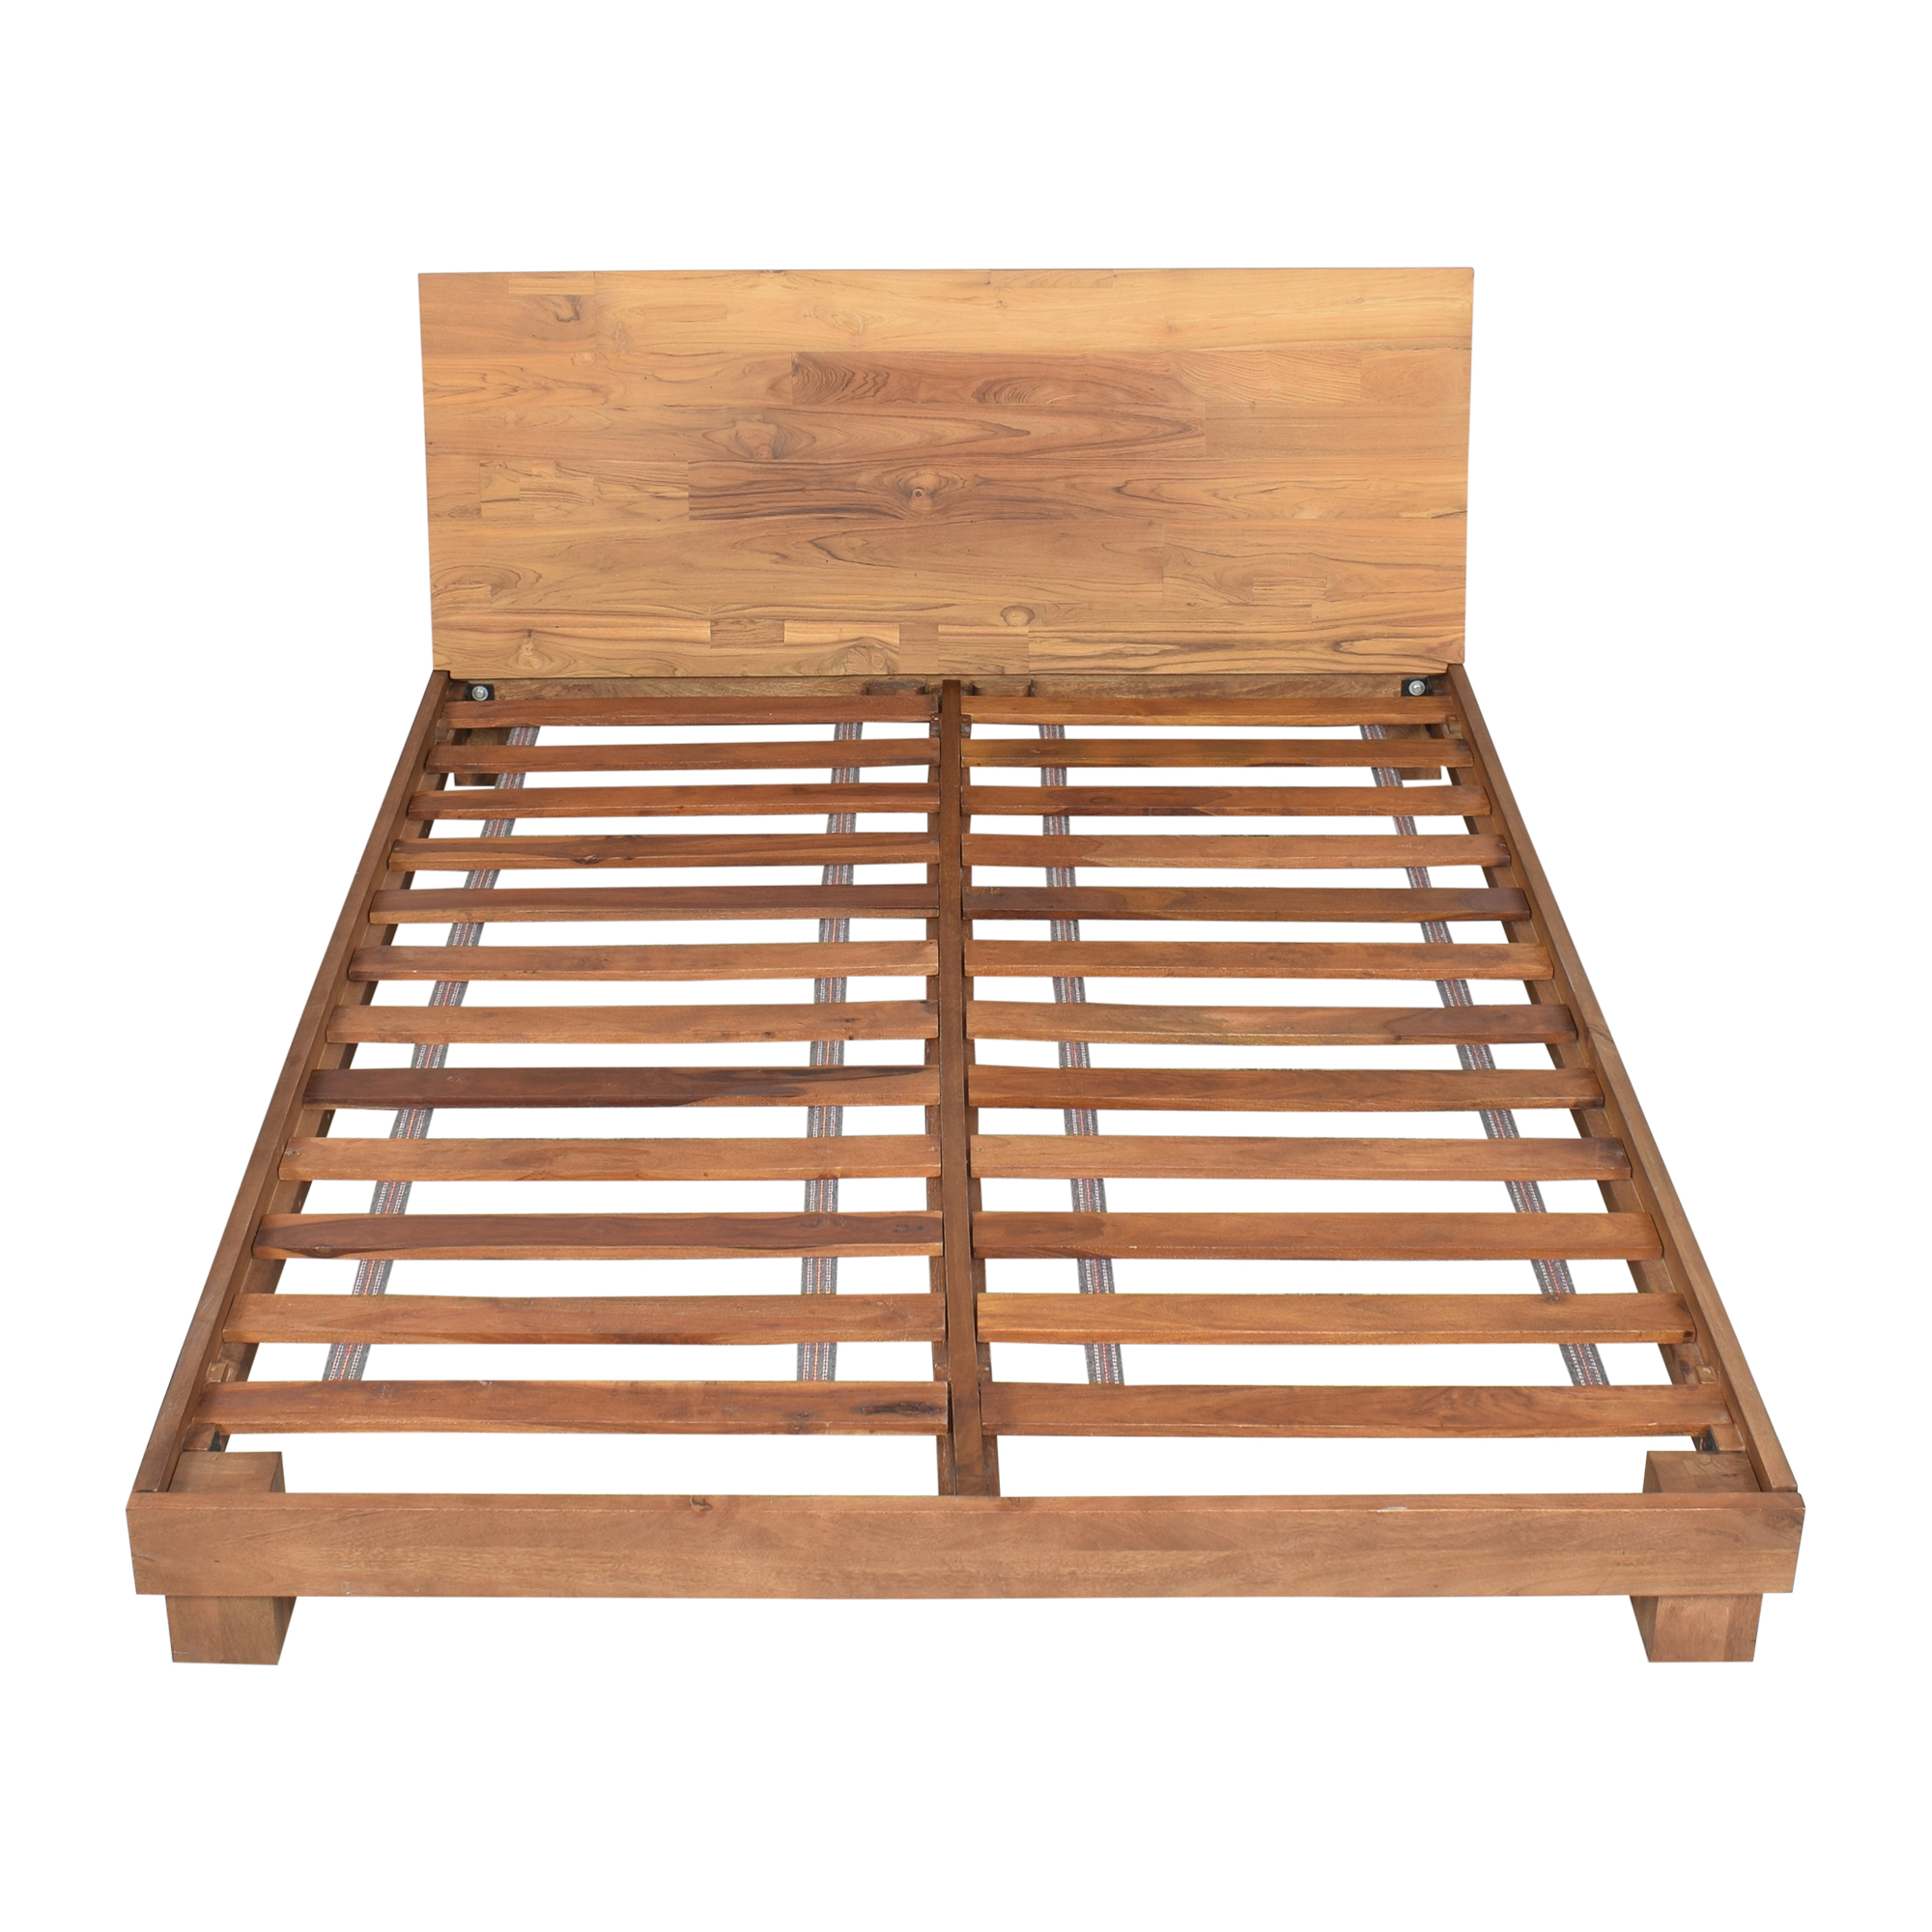 CB2 CB2 Dondra Queen Bed Beds